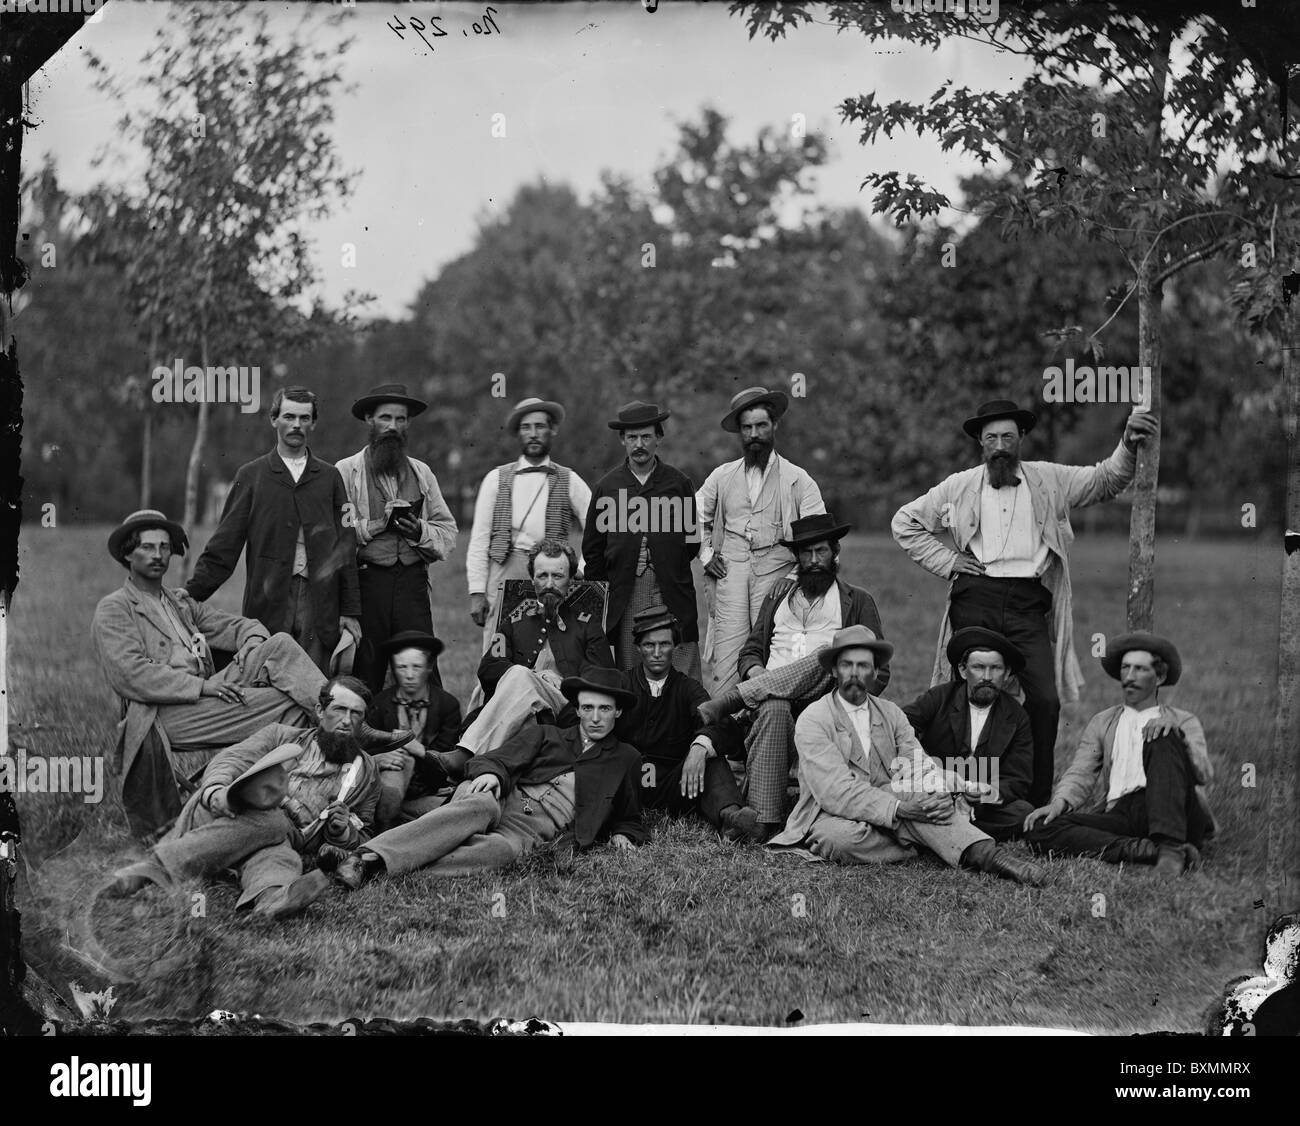 Scouts and guides, Army of the Potomac reconnaissance cloak and dagger glass plate negative fashion 1860s hats men - Stock Image